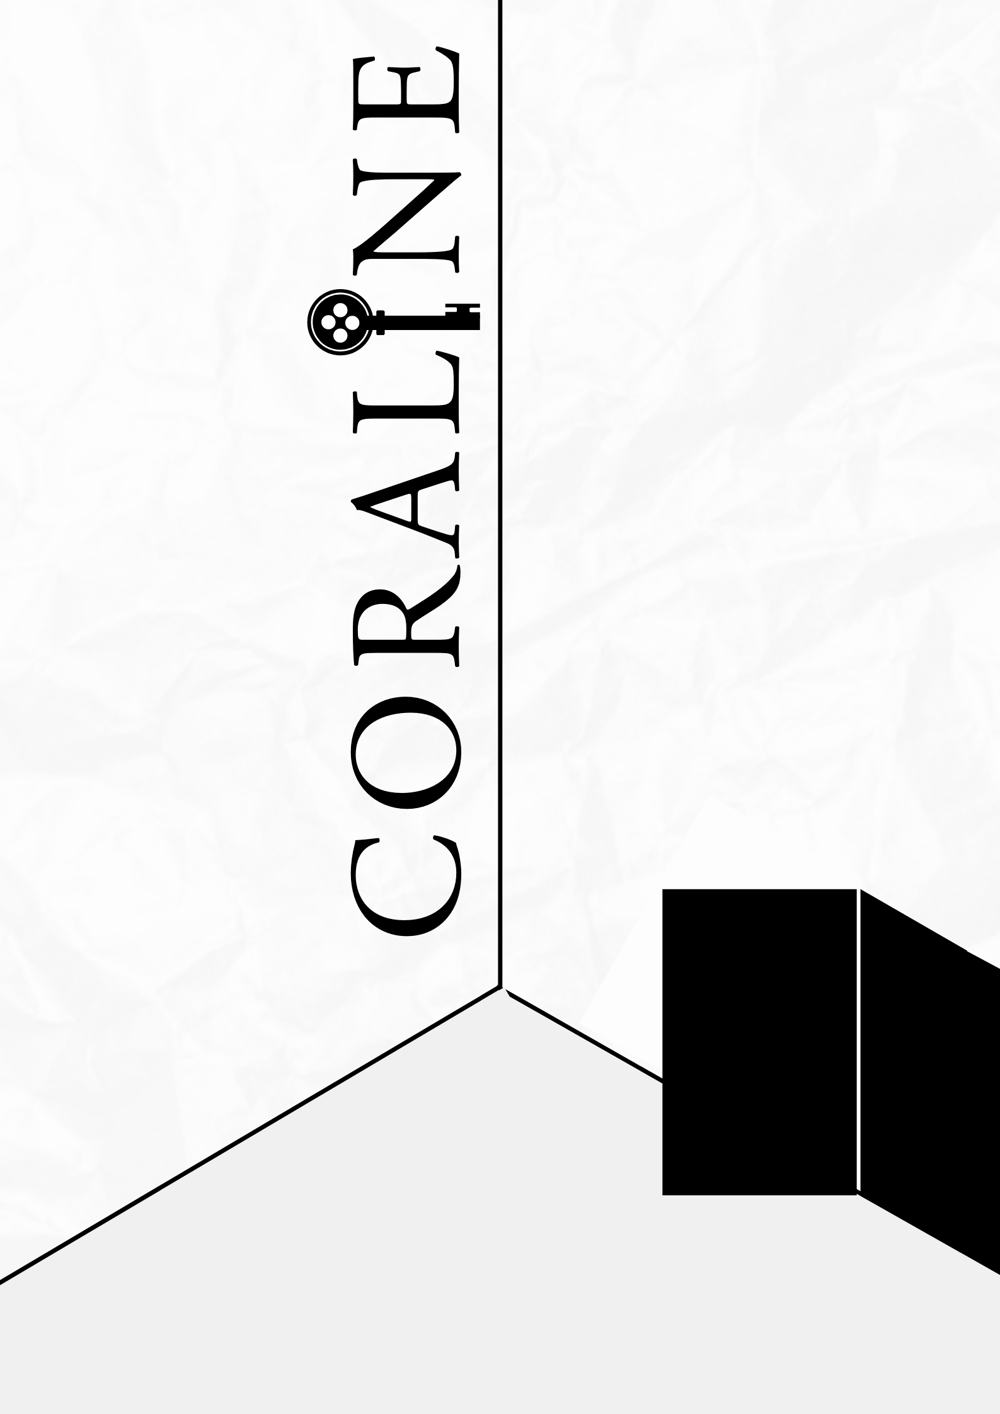 Film Posters - Coraline - image 2 - student project